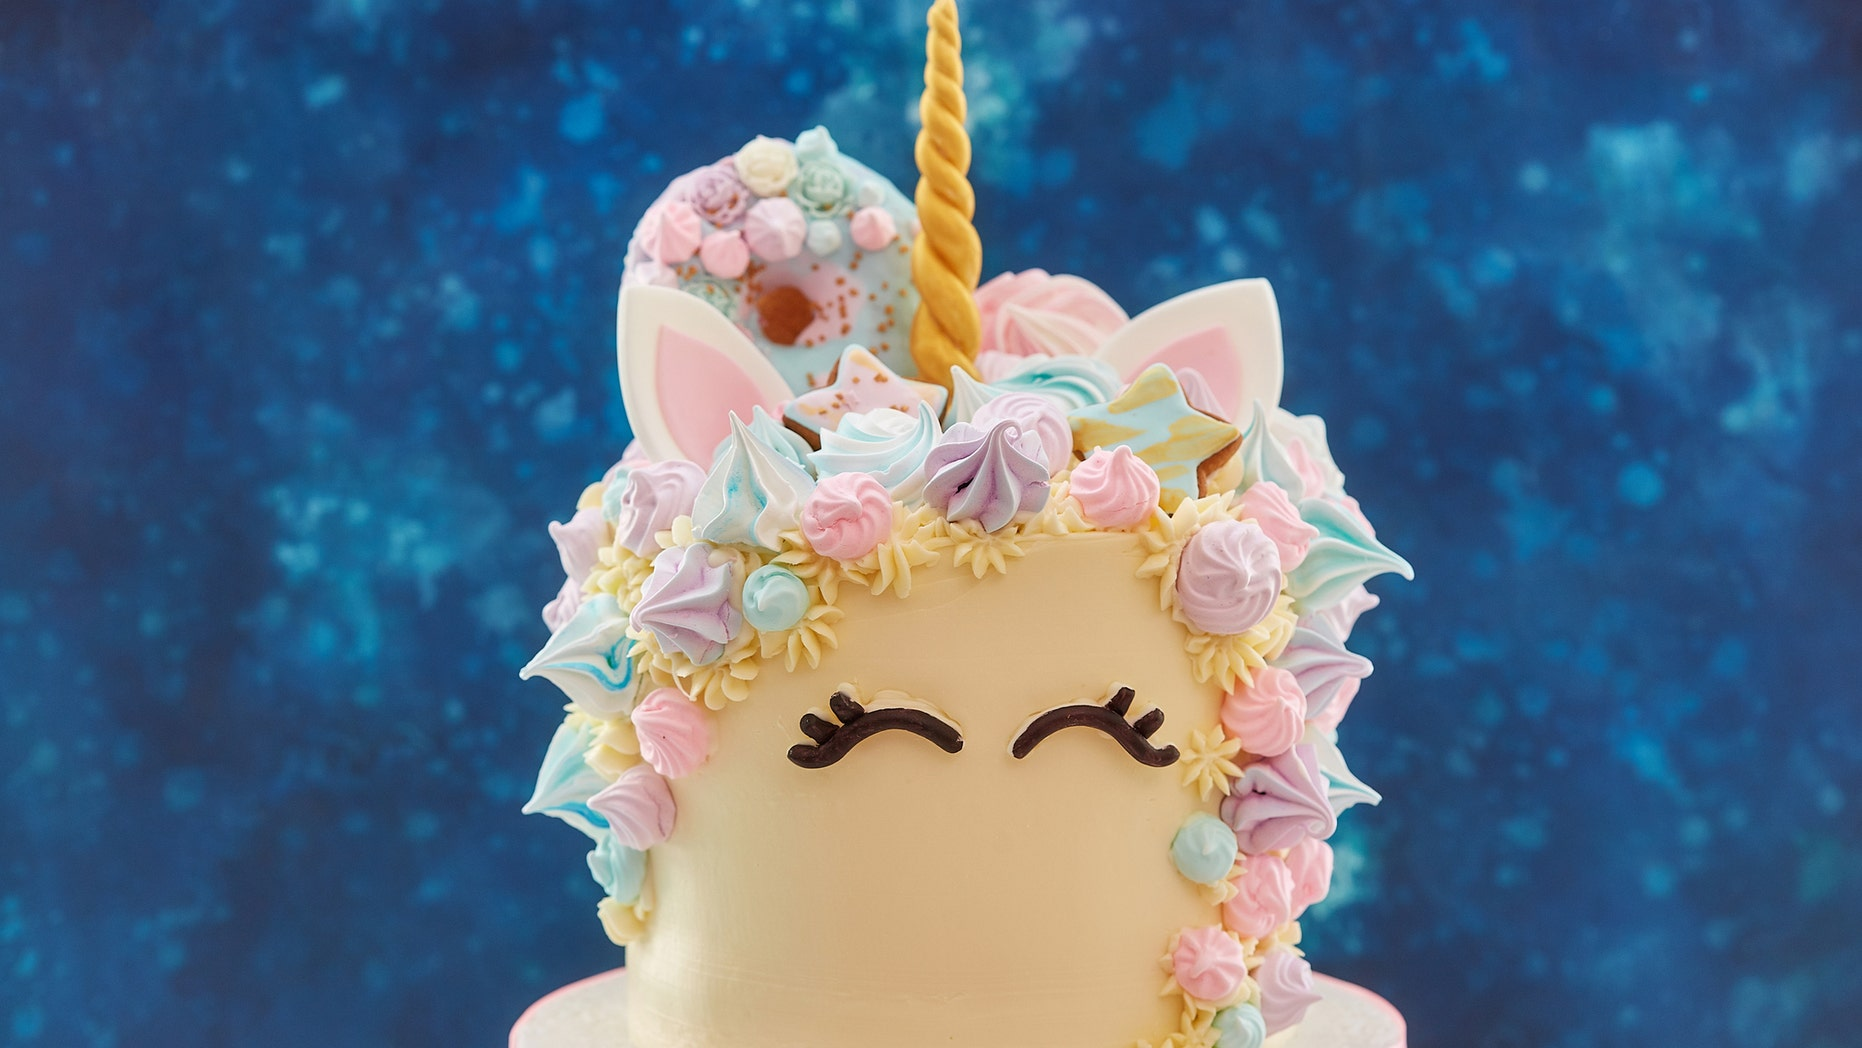 Unicorn-themed foods were quite the hit throughout 2018.